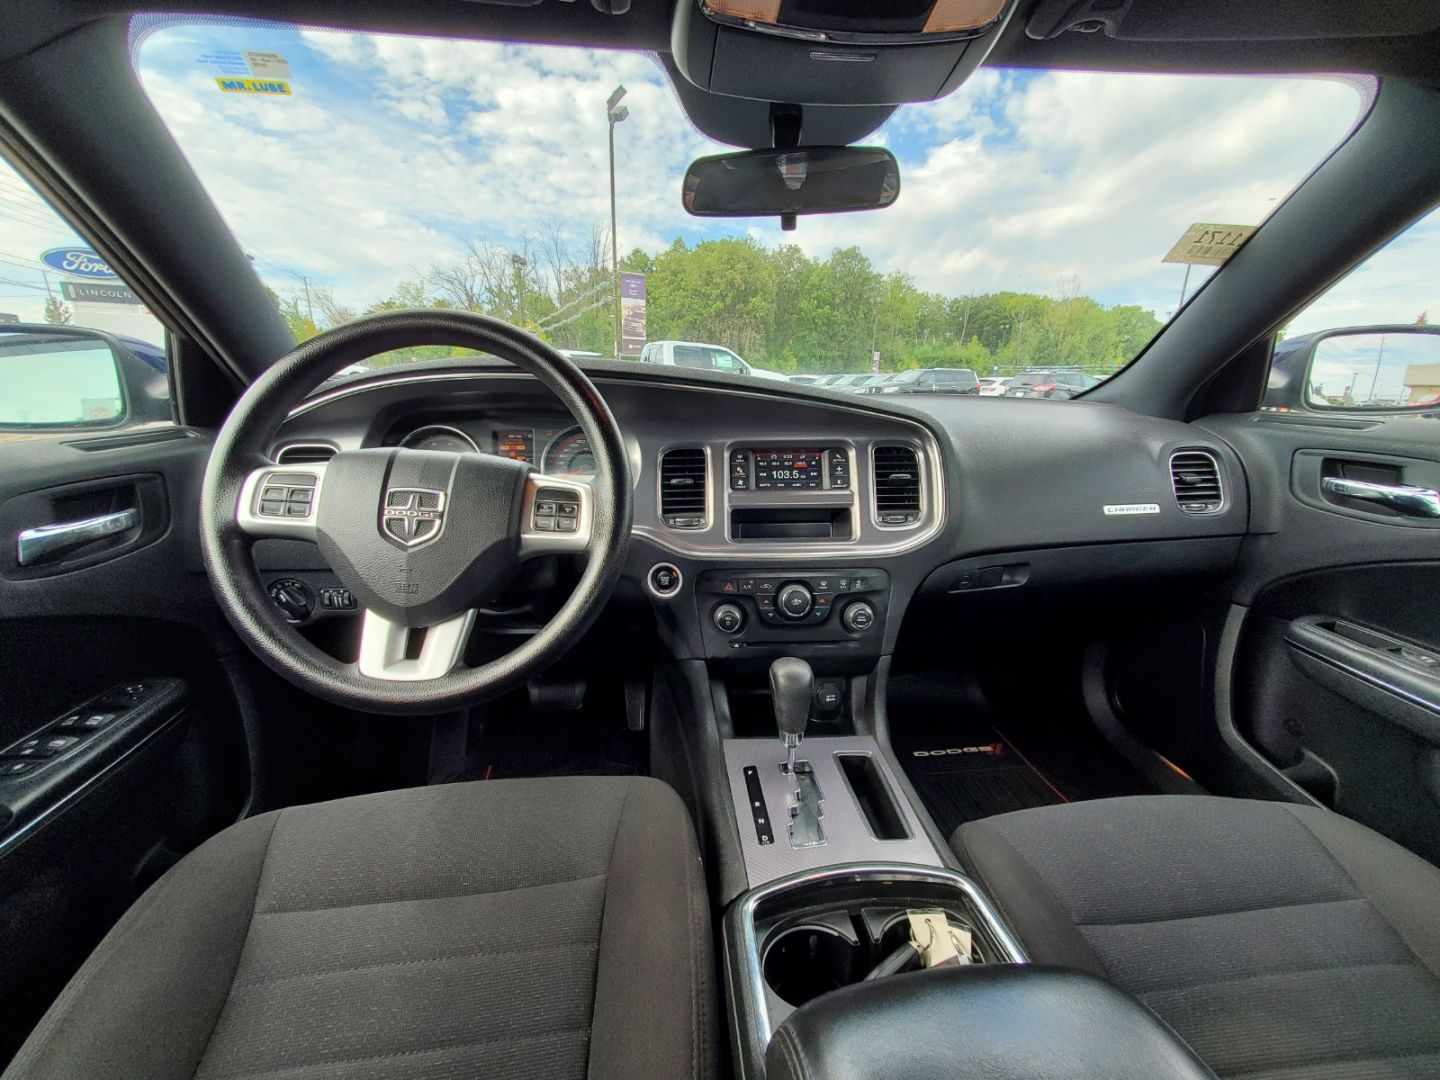 2014 Dodge Charger SE for sale in Mississauga, Ontario